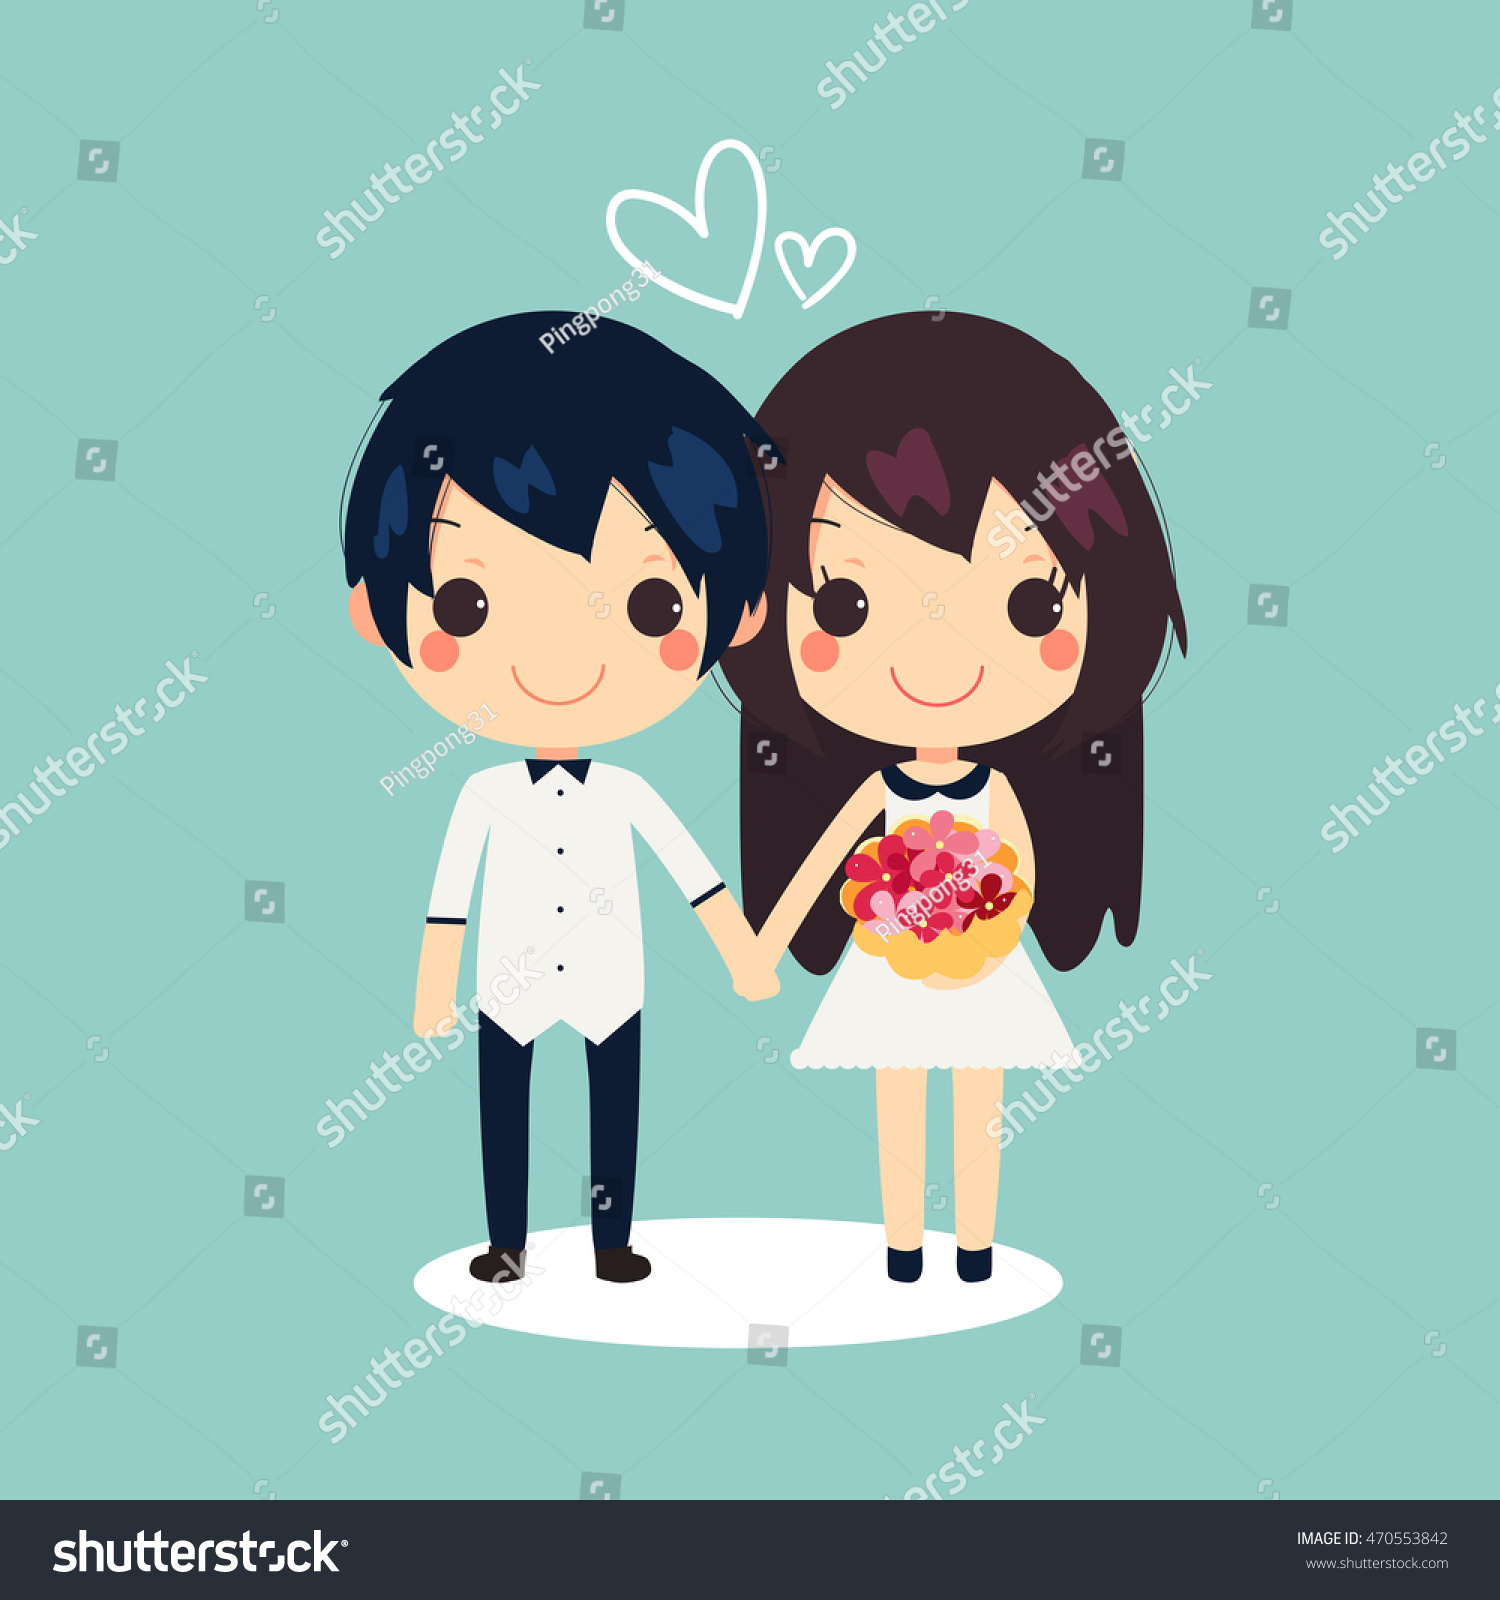 Animated Couples Hand Holding Pics